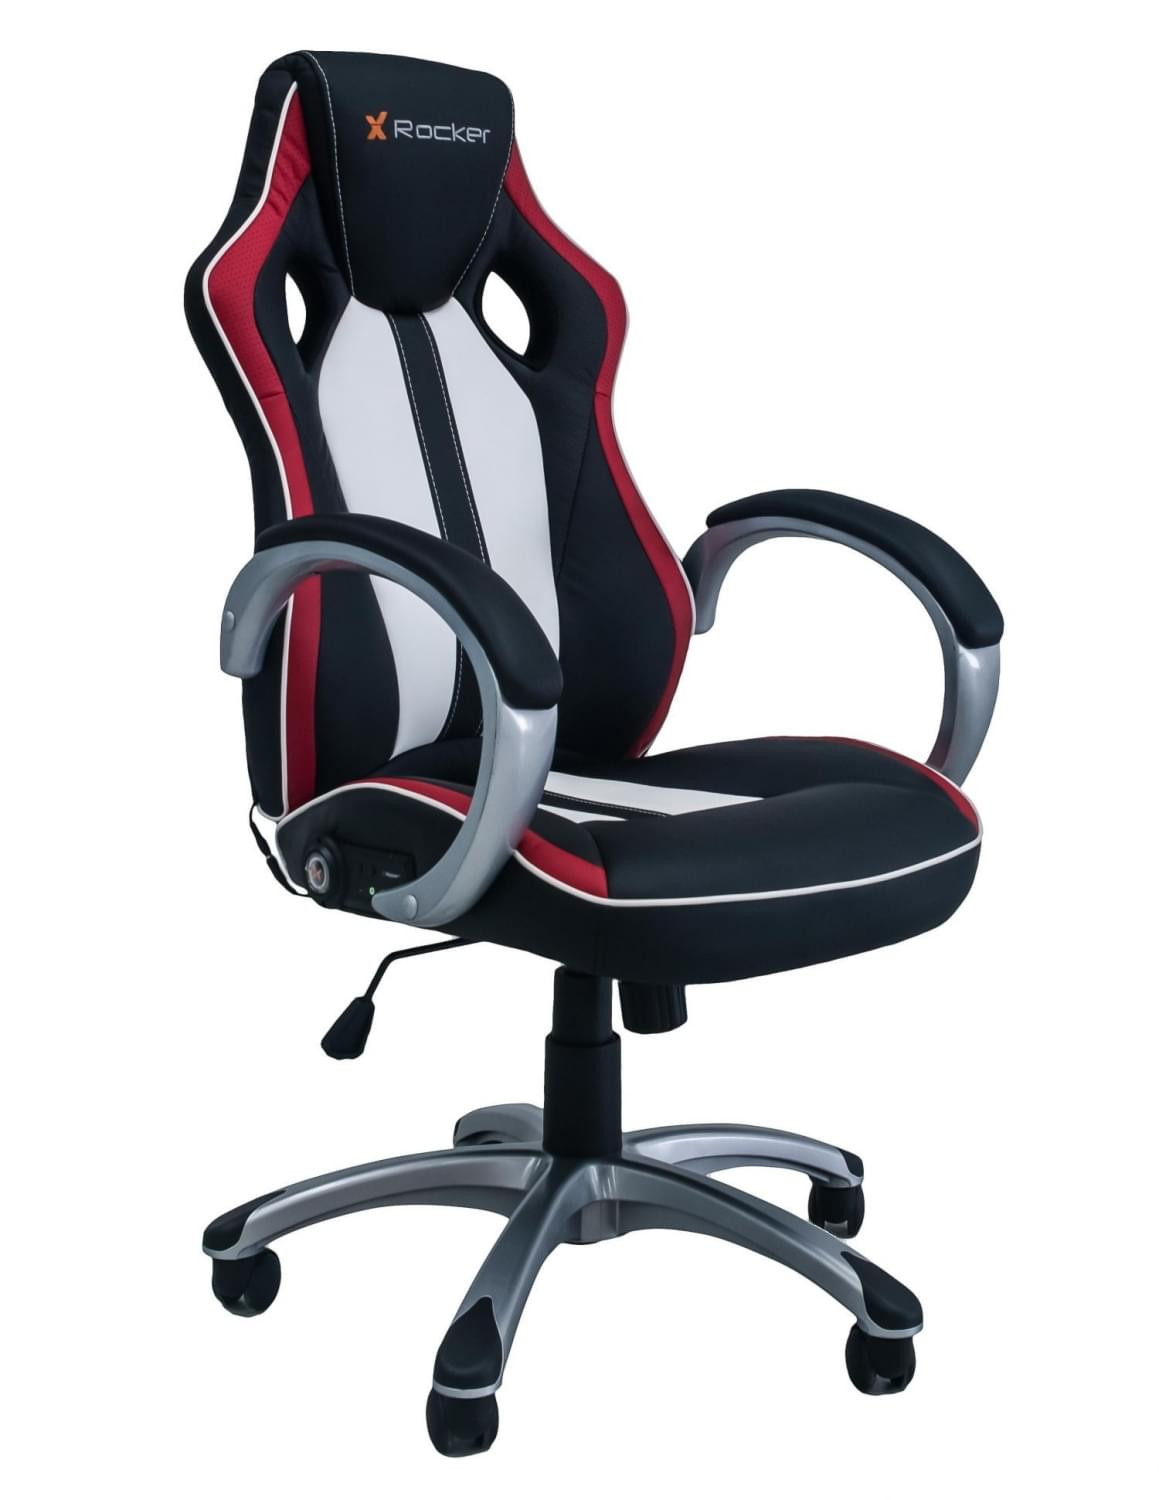 Best ideas about Bluetooth Gaming Chair . Save or Pin X Rocker Rogue 2 0 Bluetooth Rechagrable PC Gaming Chair Now.